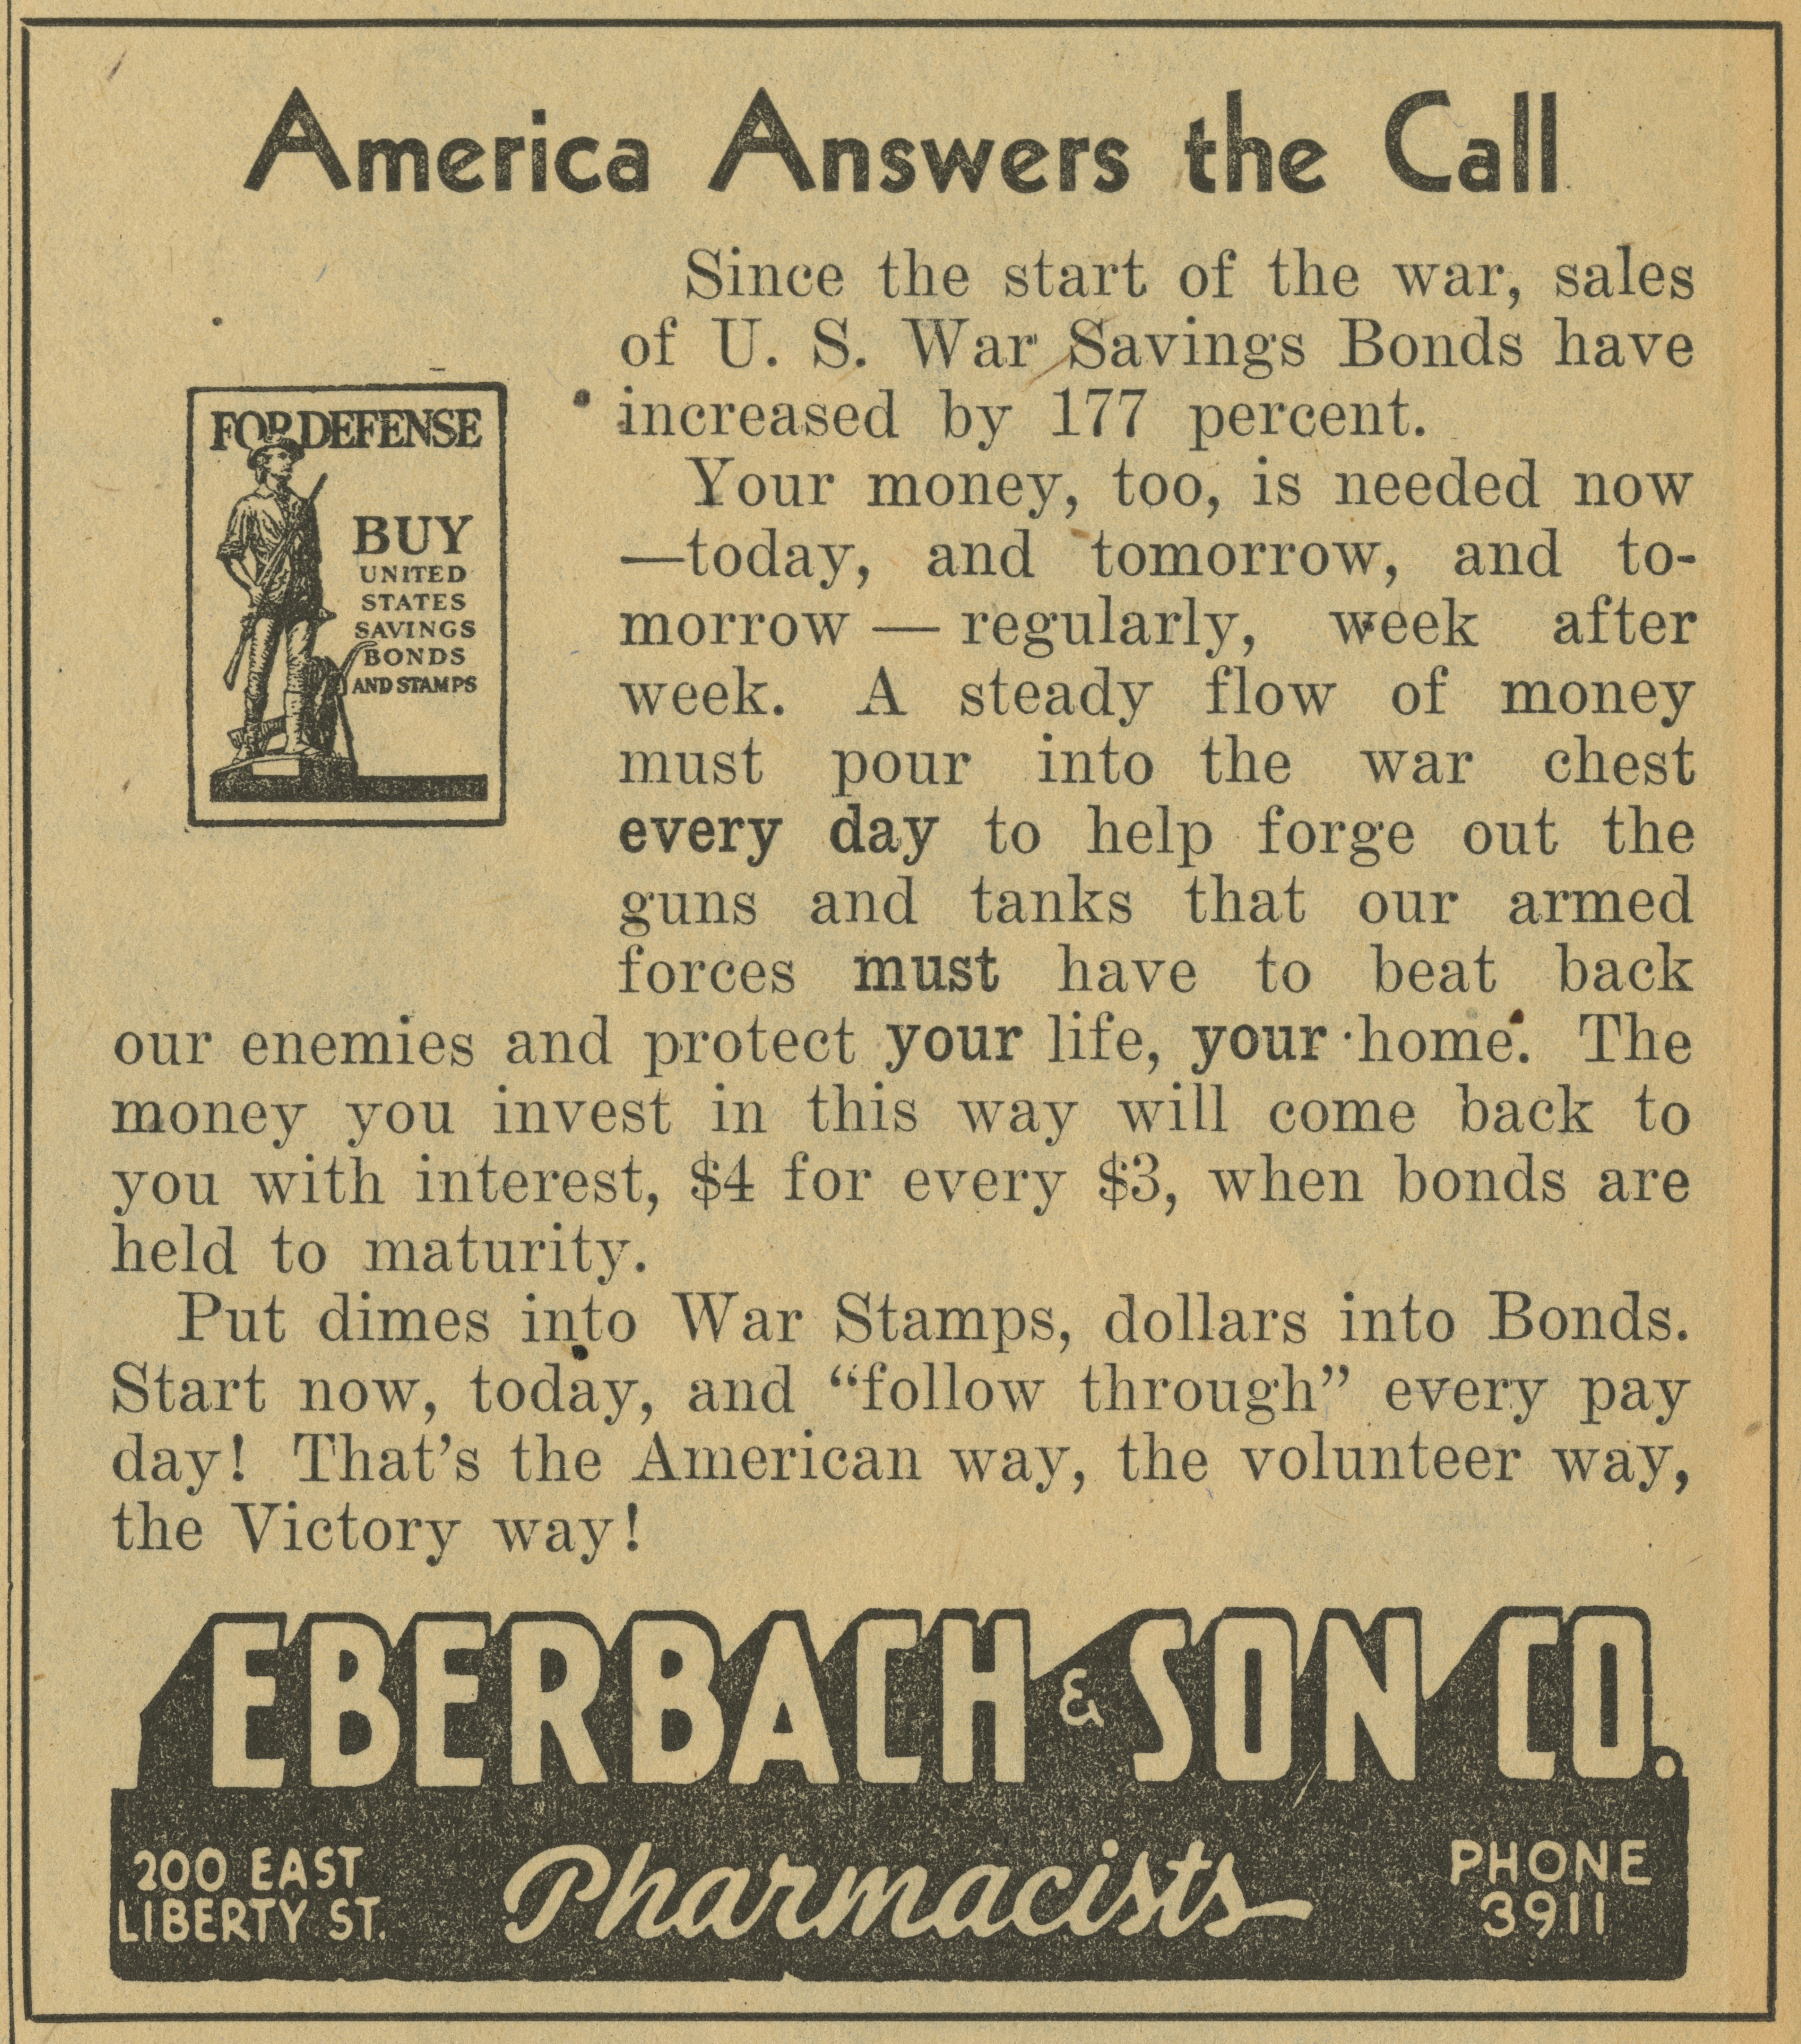 Eberbach & Son Co. [advertisement] image